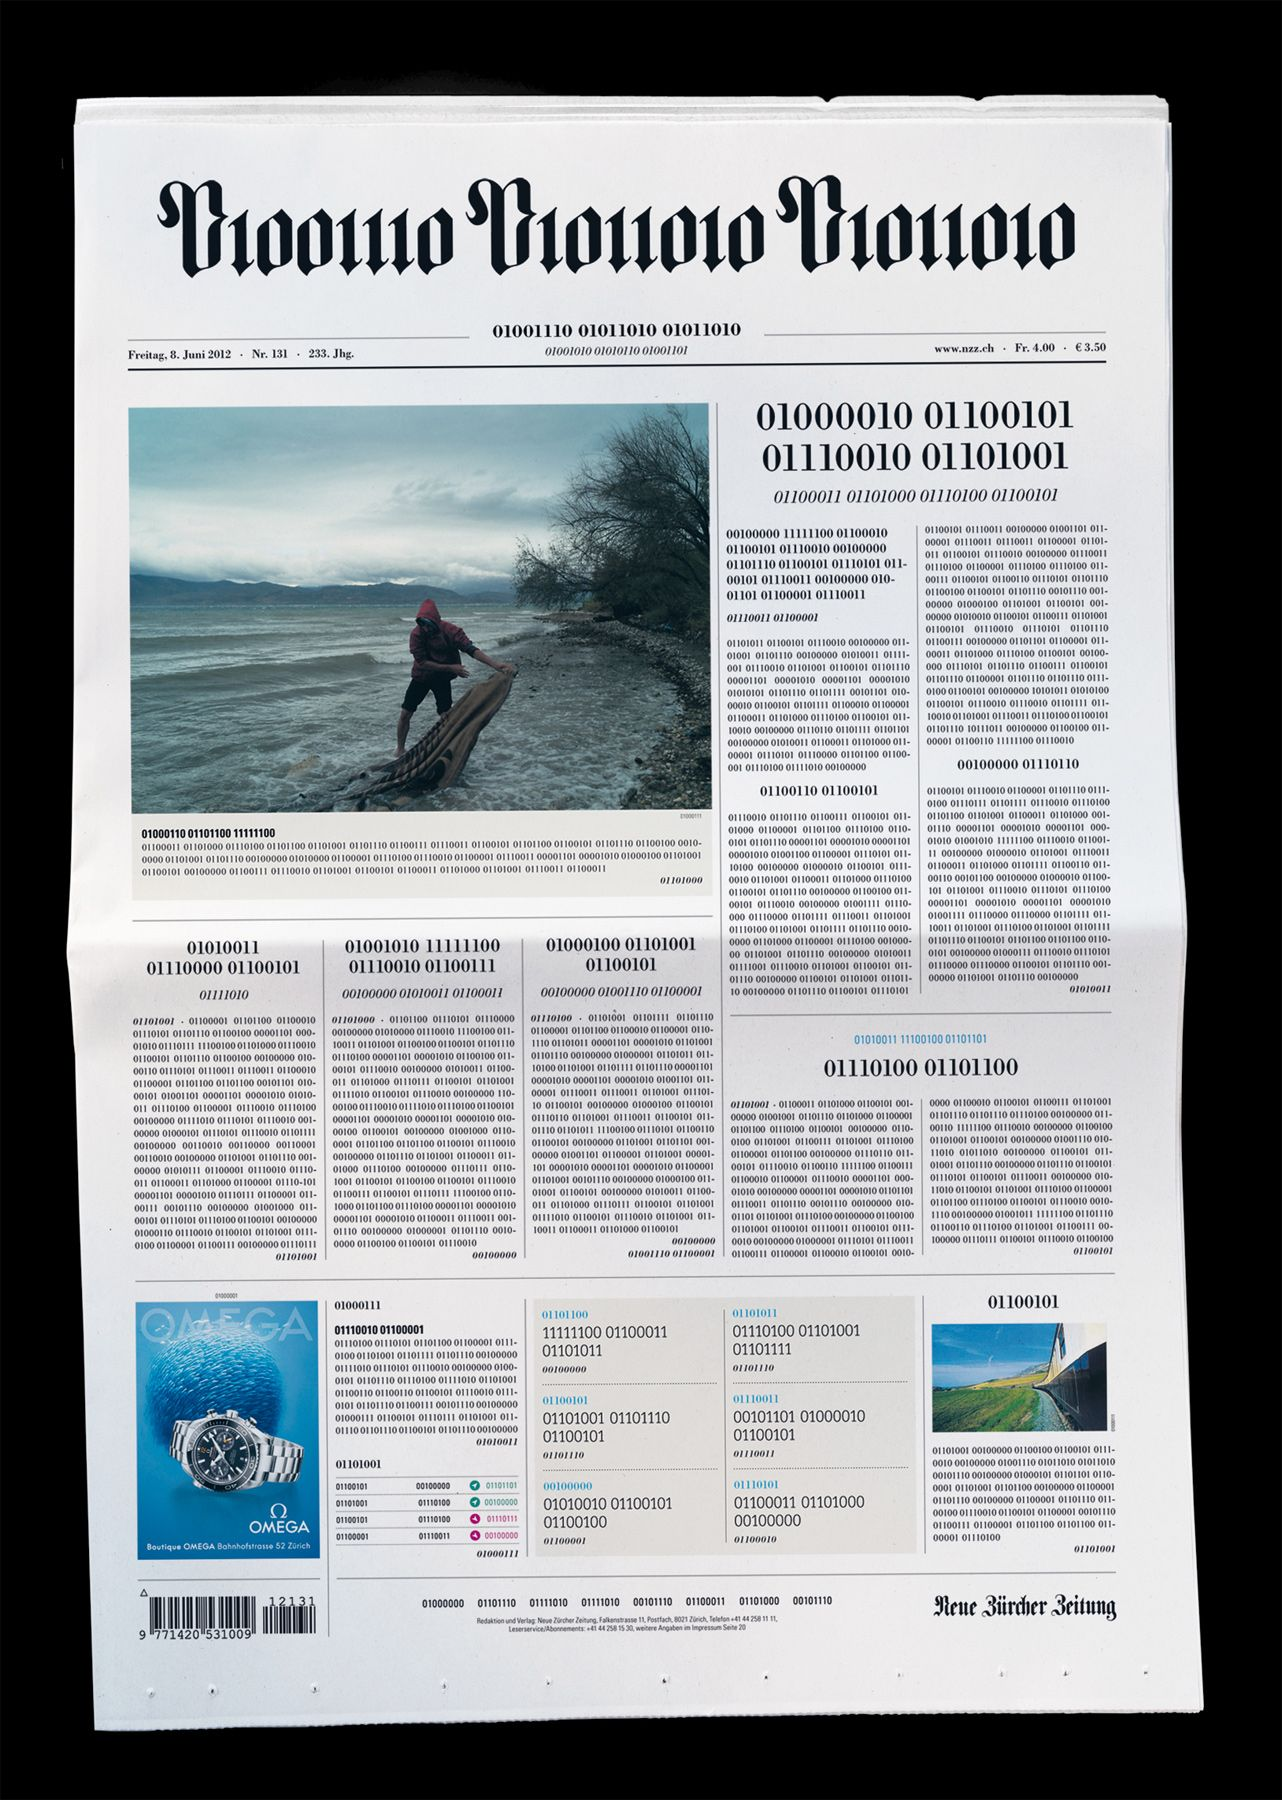 NZZ & Jung von Matt / Limmat, Zurich  Front page in binary code. NZZ chose to surprise its readers on the newspaper's very own front page entirely written in binary code.